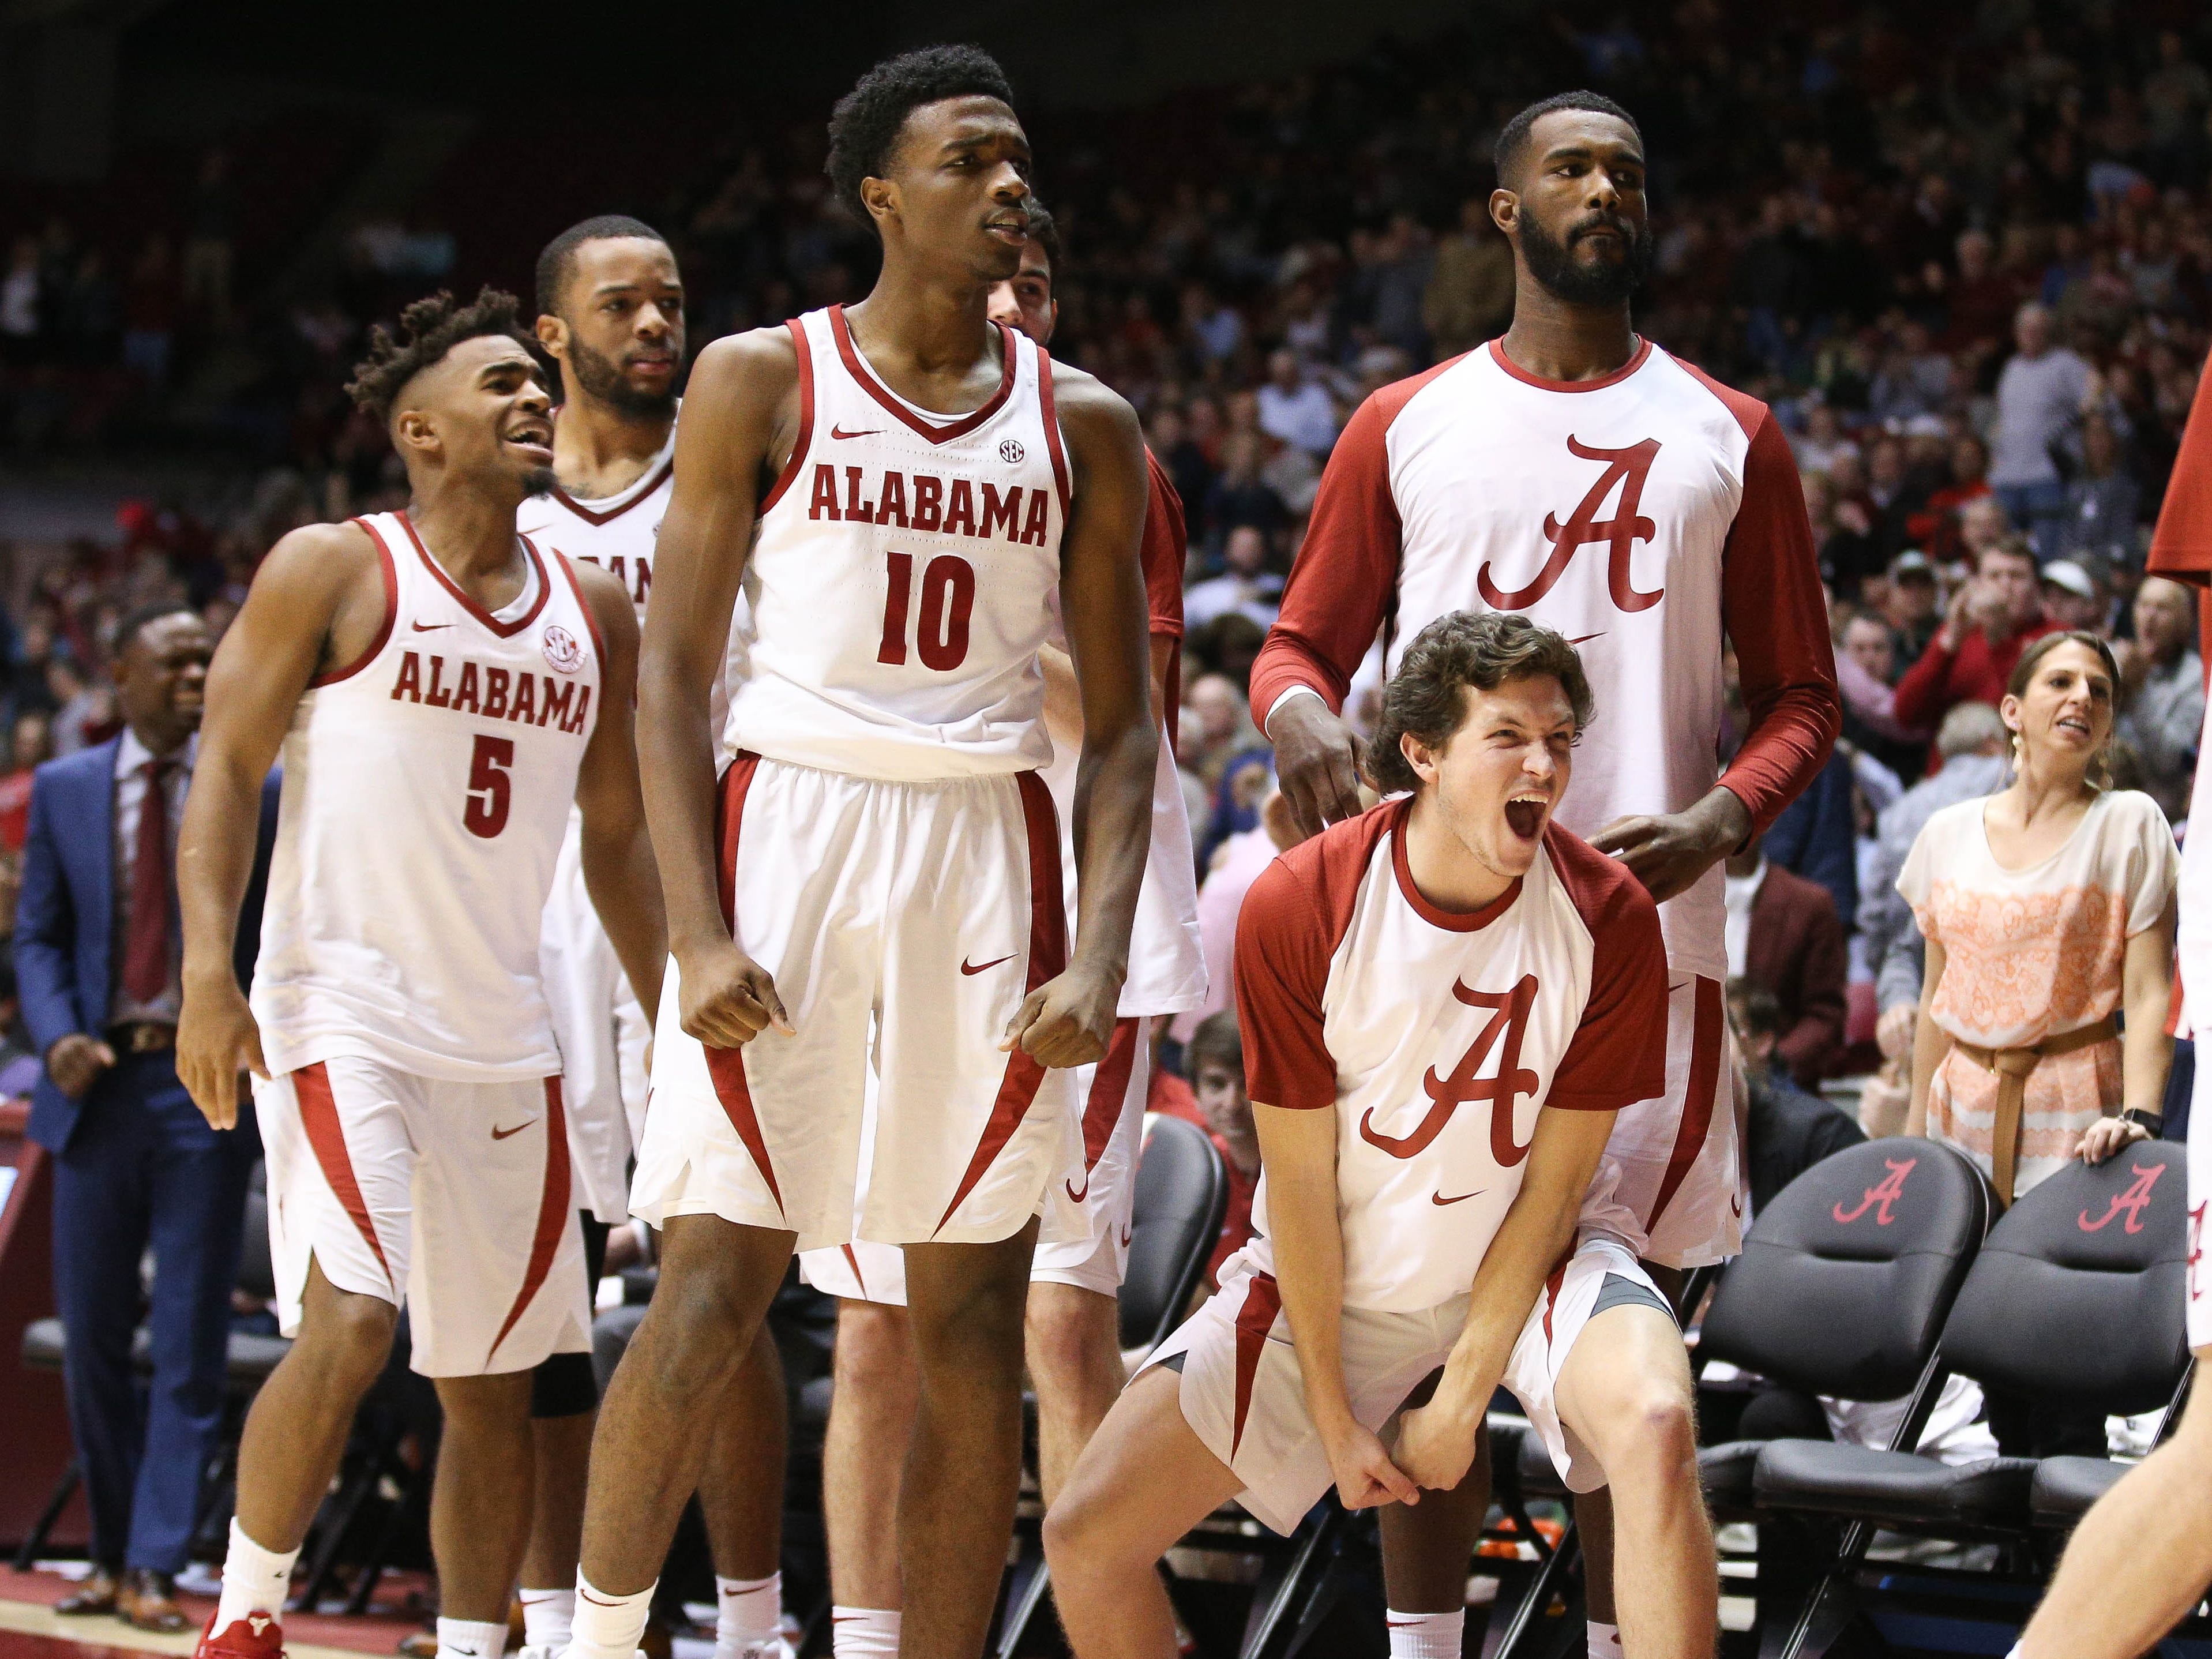 Dec 9, 2018; Tuscaloosa, AL, USA; Alabama Crimson Tide guard Lawson Schaffer (24) reacts from the bench after a play against Arizona Wildcats during the second half at Coleman Coliseum. Mandatory Credit: Marvin Gentry-USA TODAY Sports